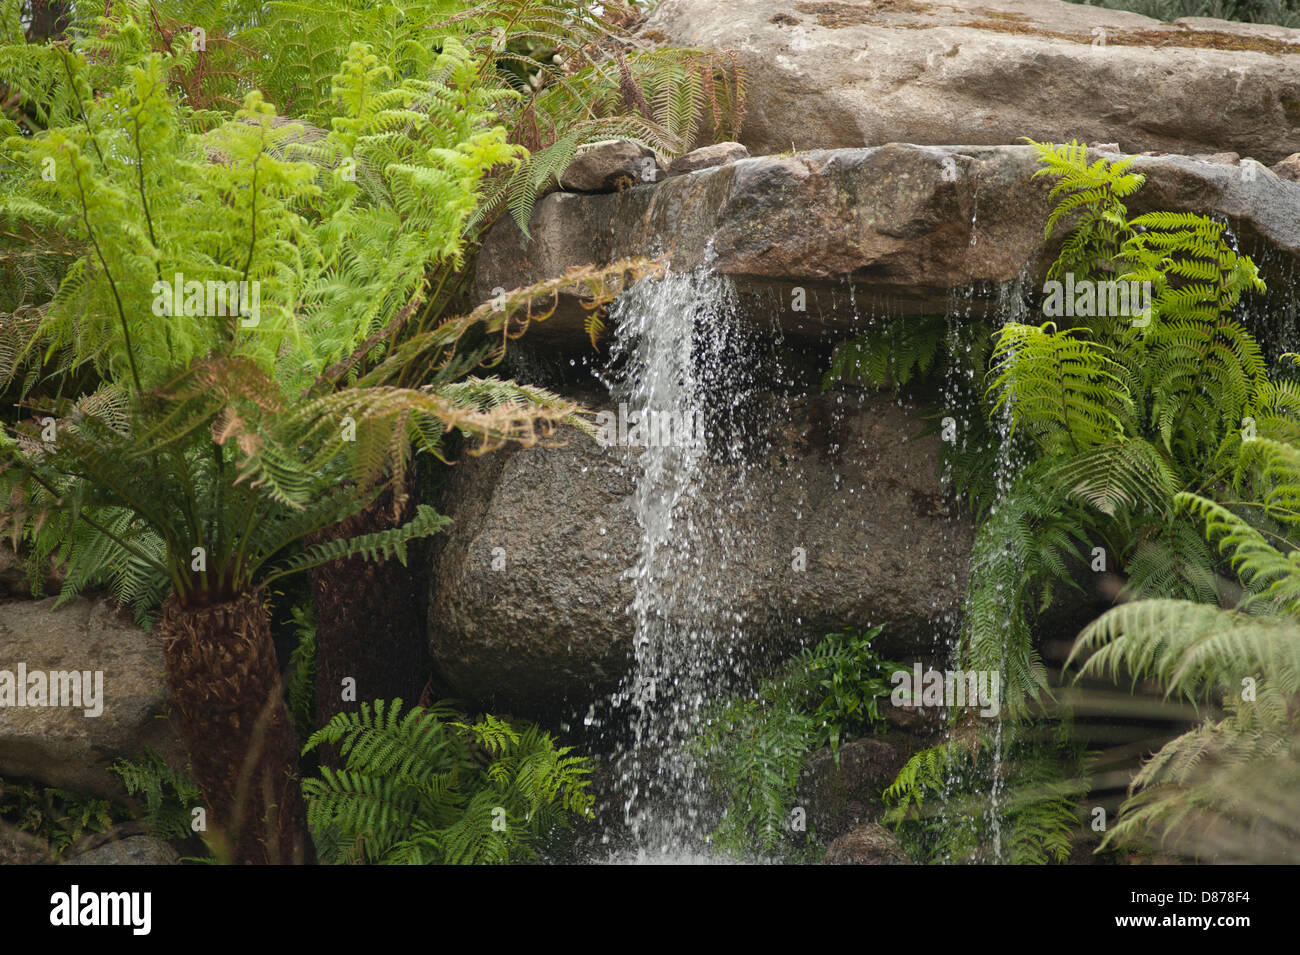 London, UK. 20th May 2013. Waterfall with ferns on Trailfinders Australian Garden by Flemings at the RHS Chelsea - Stock Image